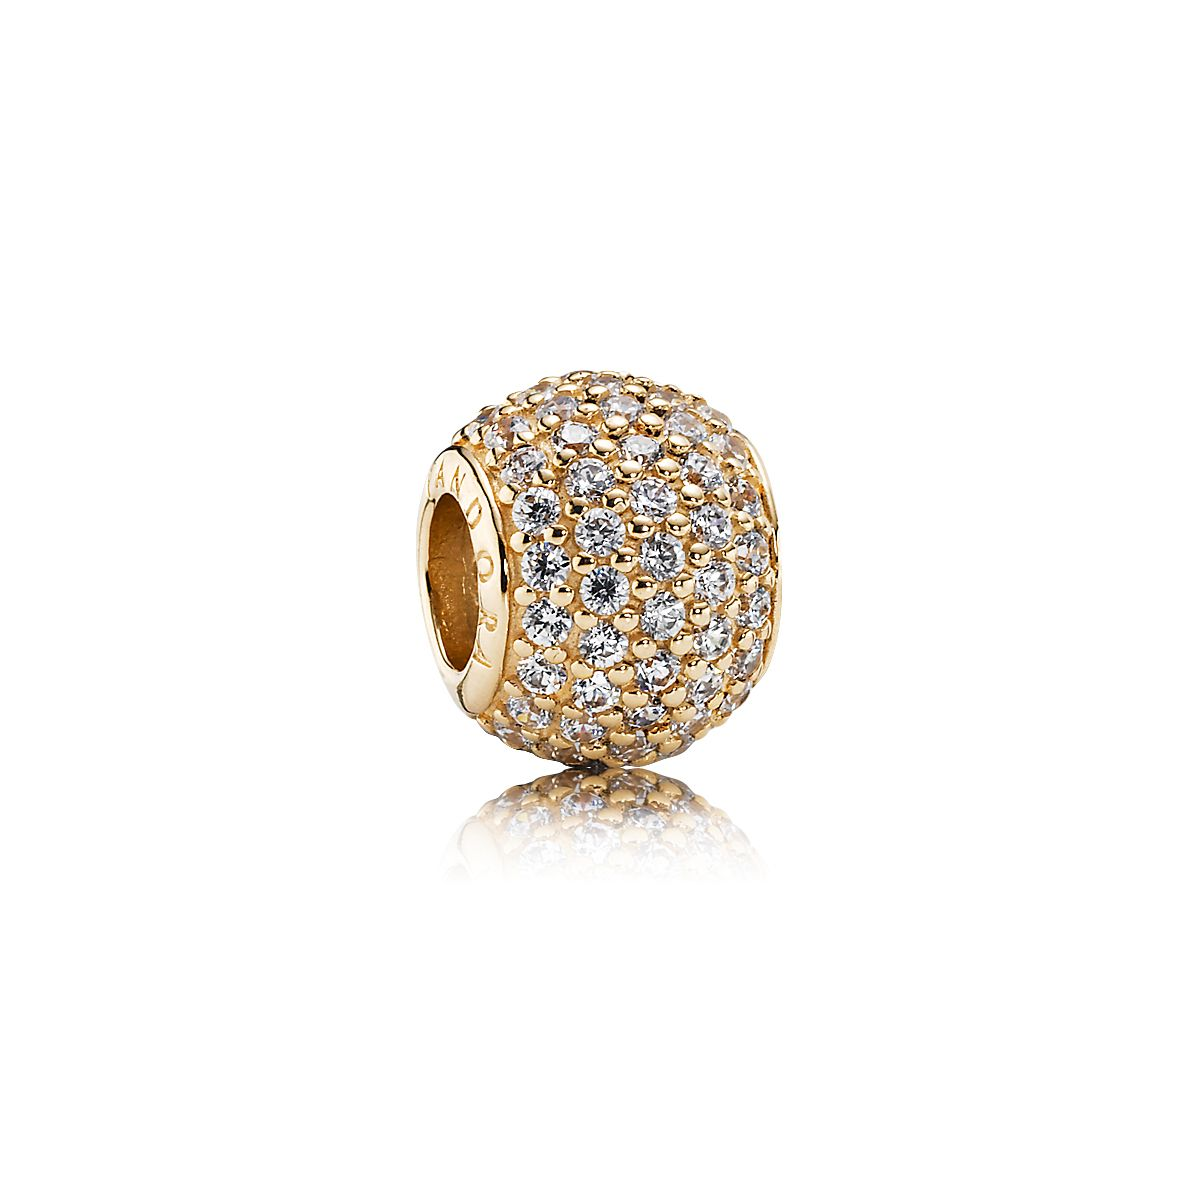 Abstract pave gold charm with cubic zirconia